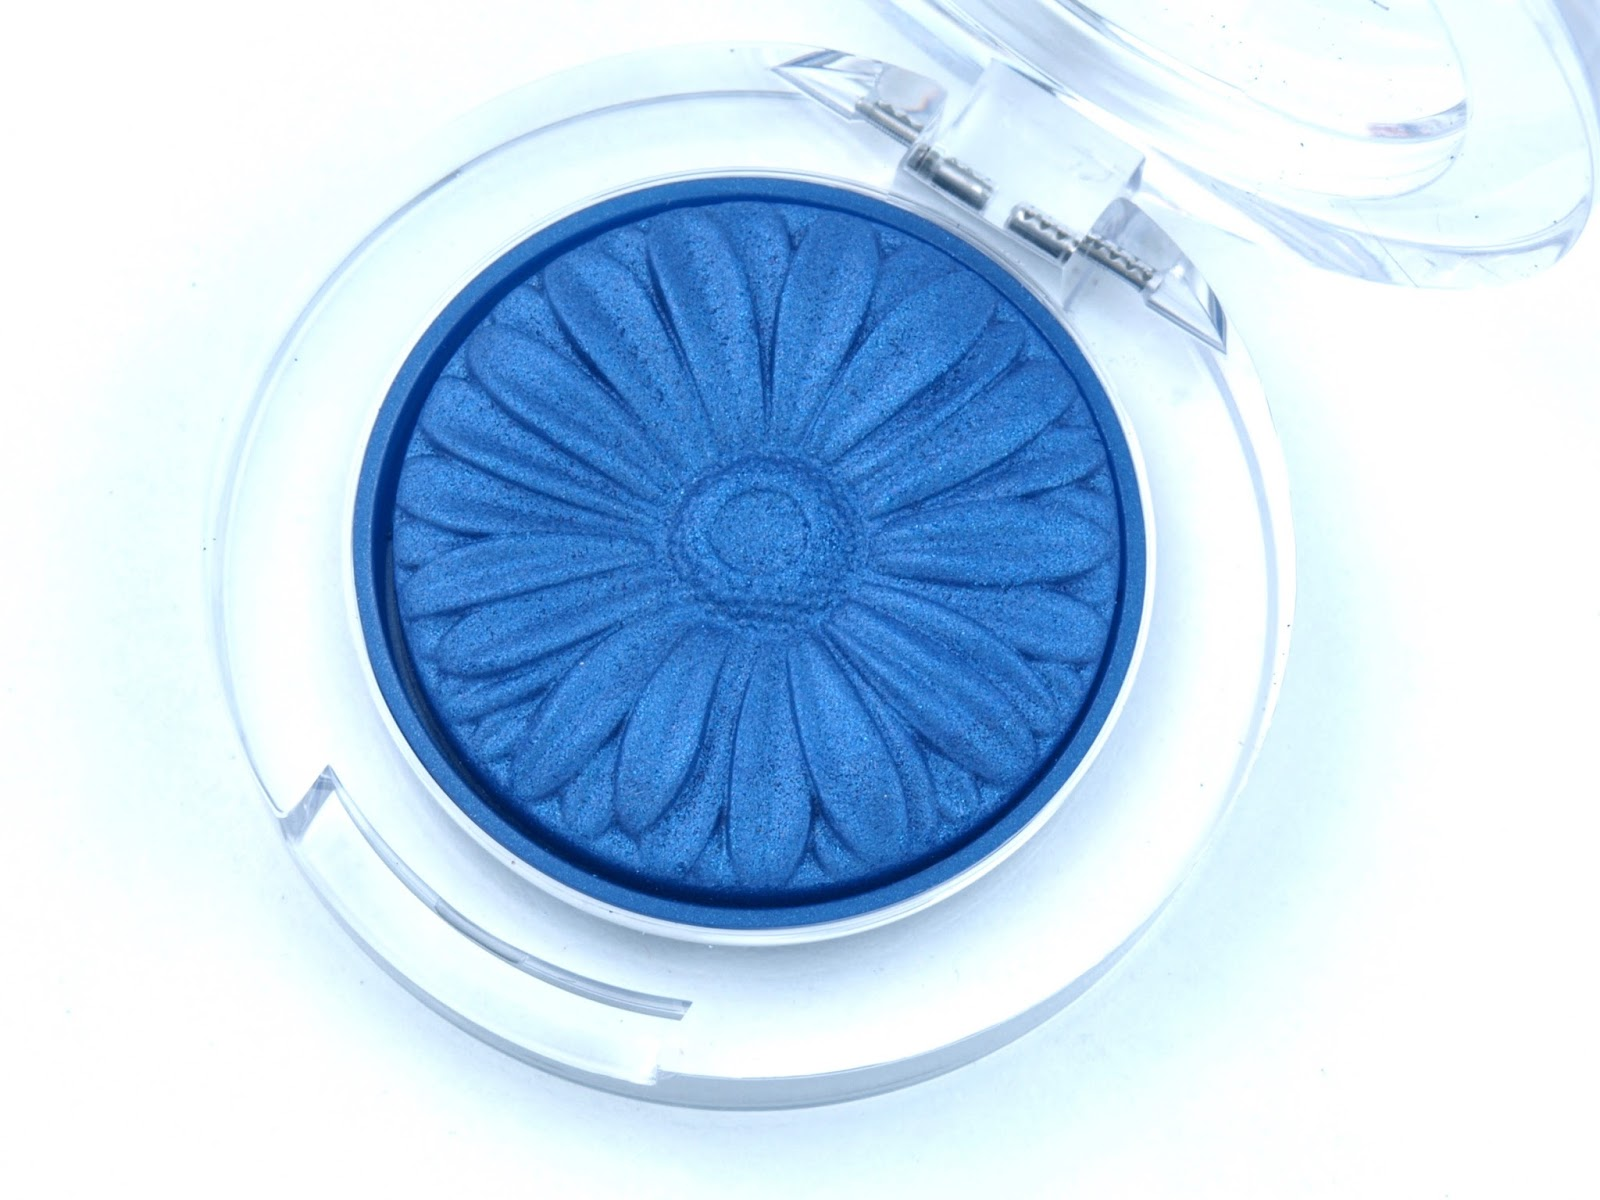 clinique lid pop eyeshadows review and swatches the happy